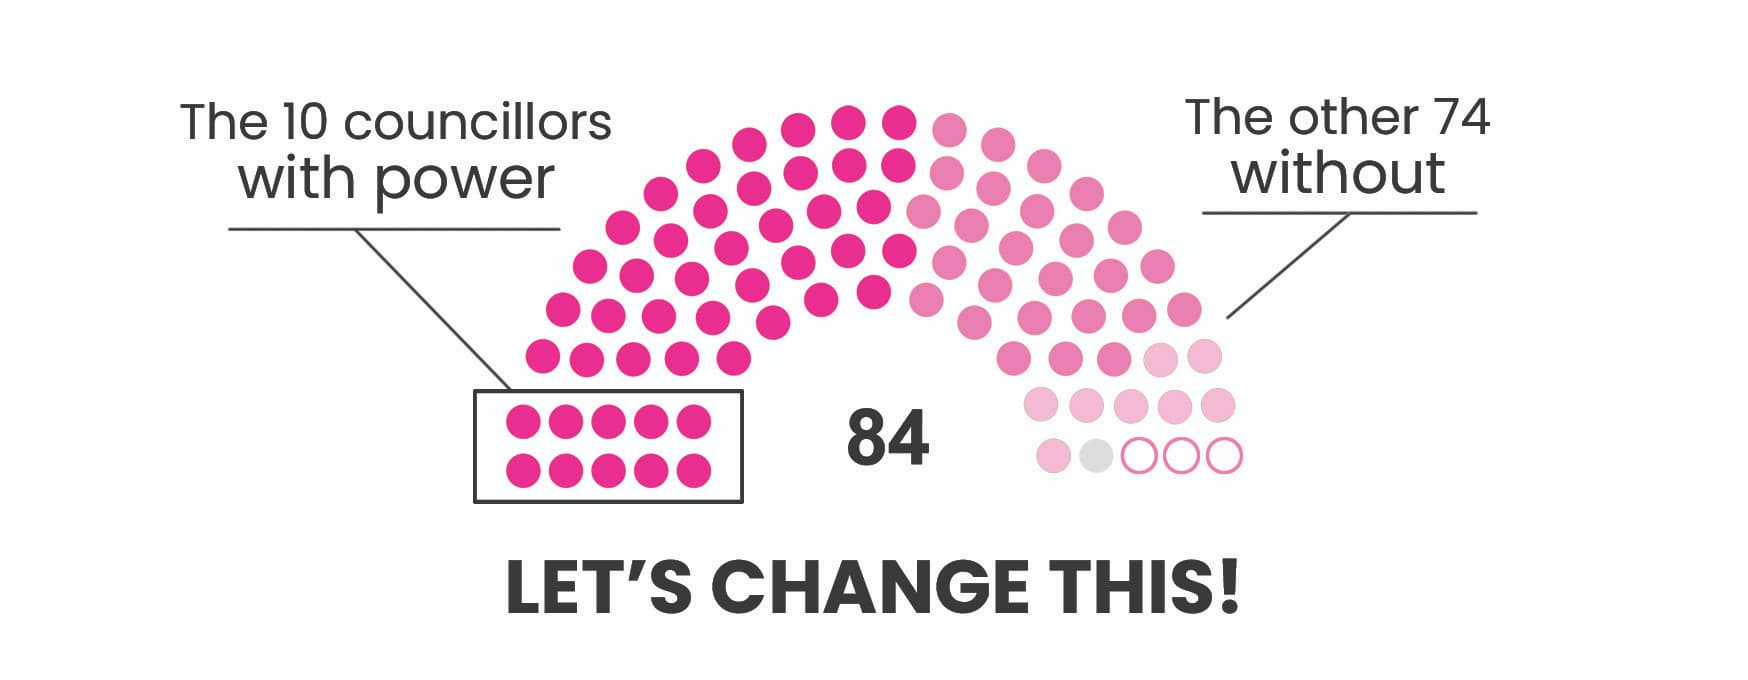 Graphic showing 10 councillors with power and 74 without - let's change this!